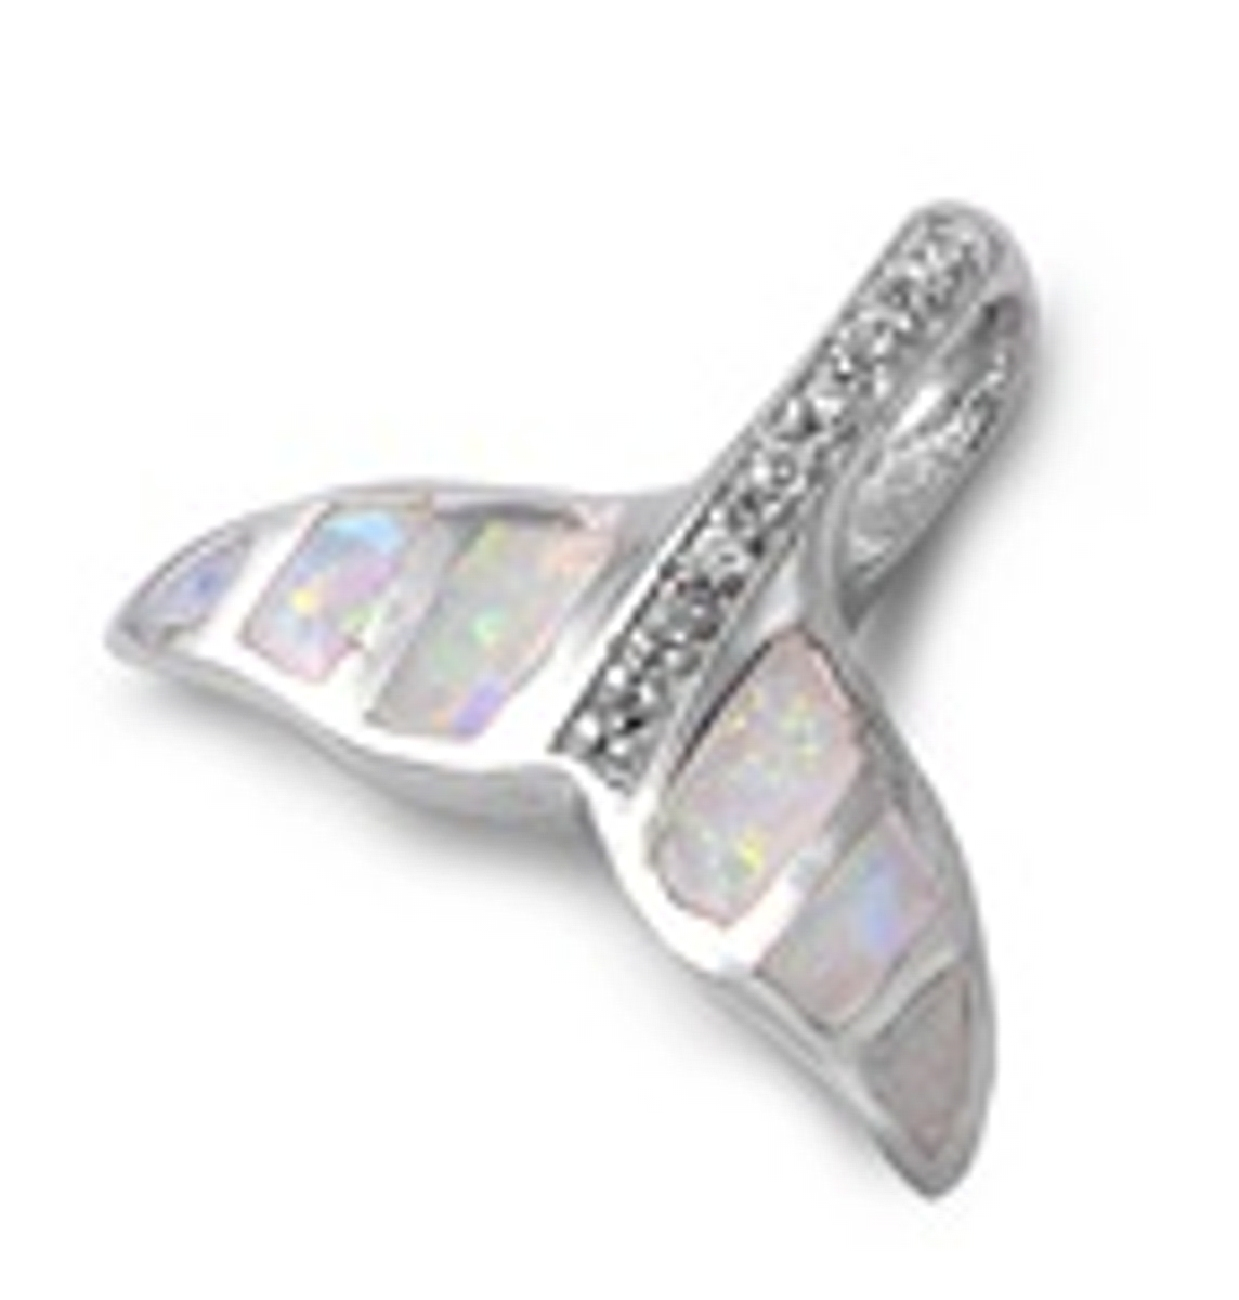 Whale Fluke Pendant With Pearlized Opal And Cubic Zirconia Center